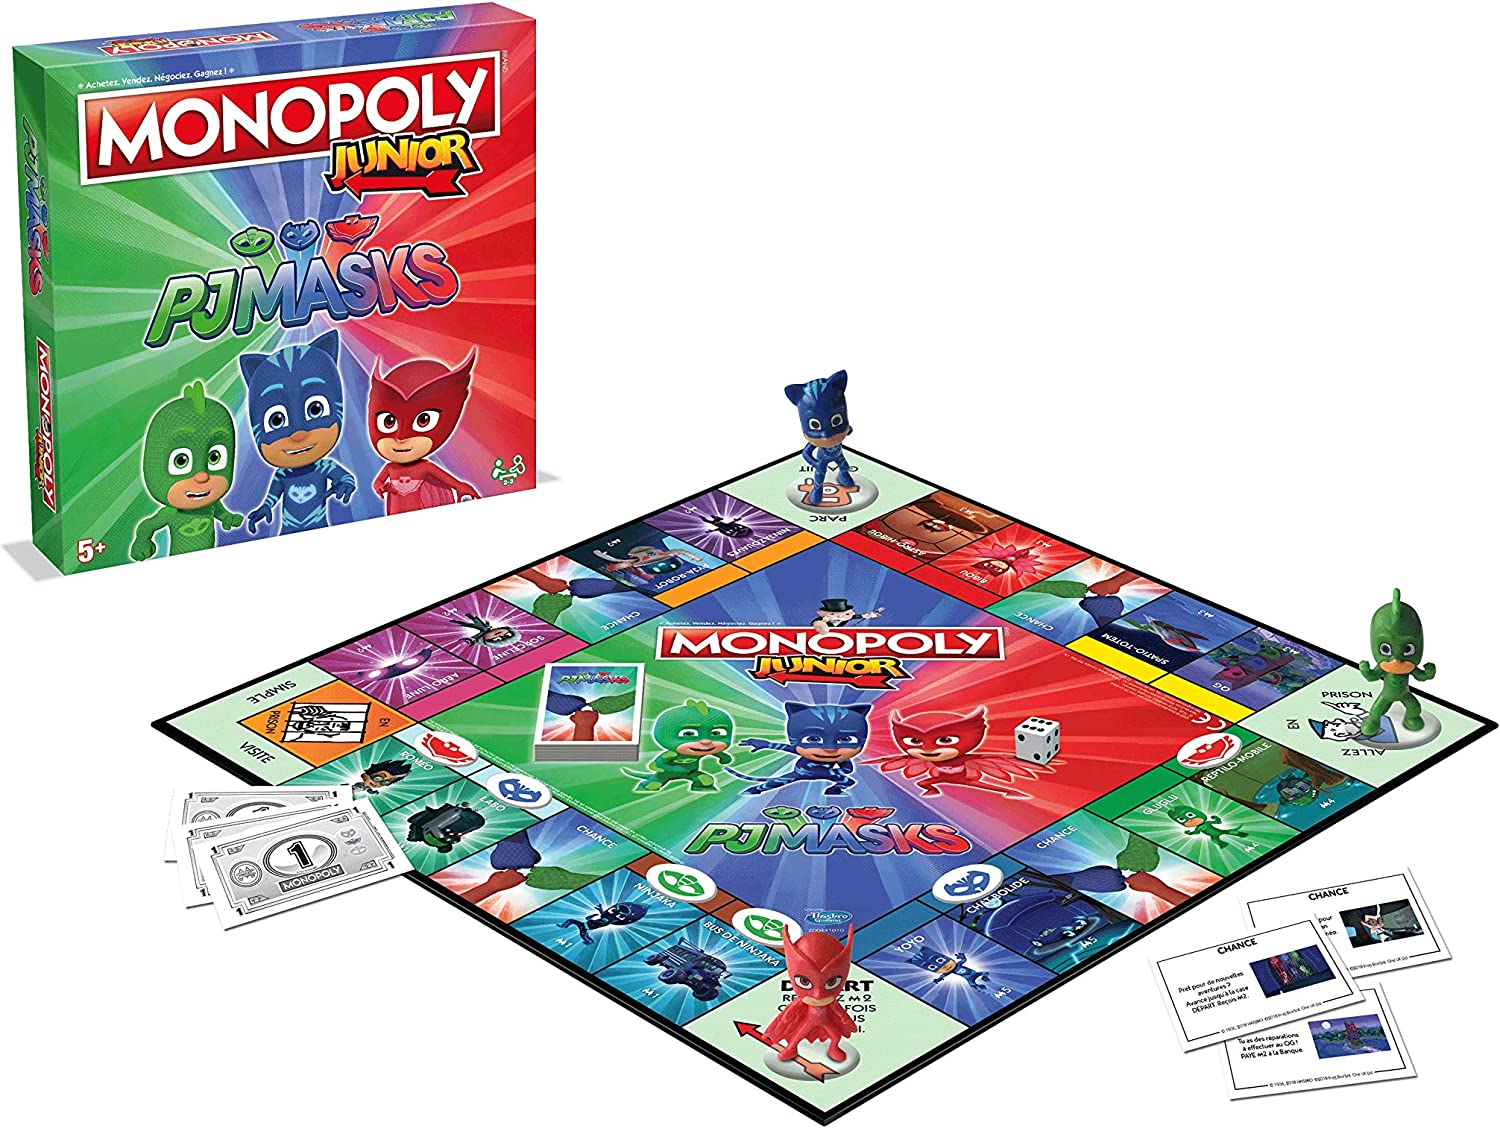 Winning Moves Monopoly Junior pyjamask, 0238, Version Francesa: Amazon.es: Juguetes y juegos